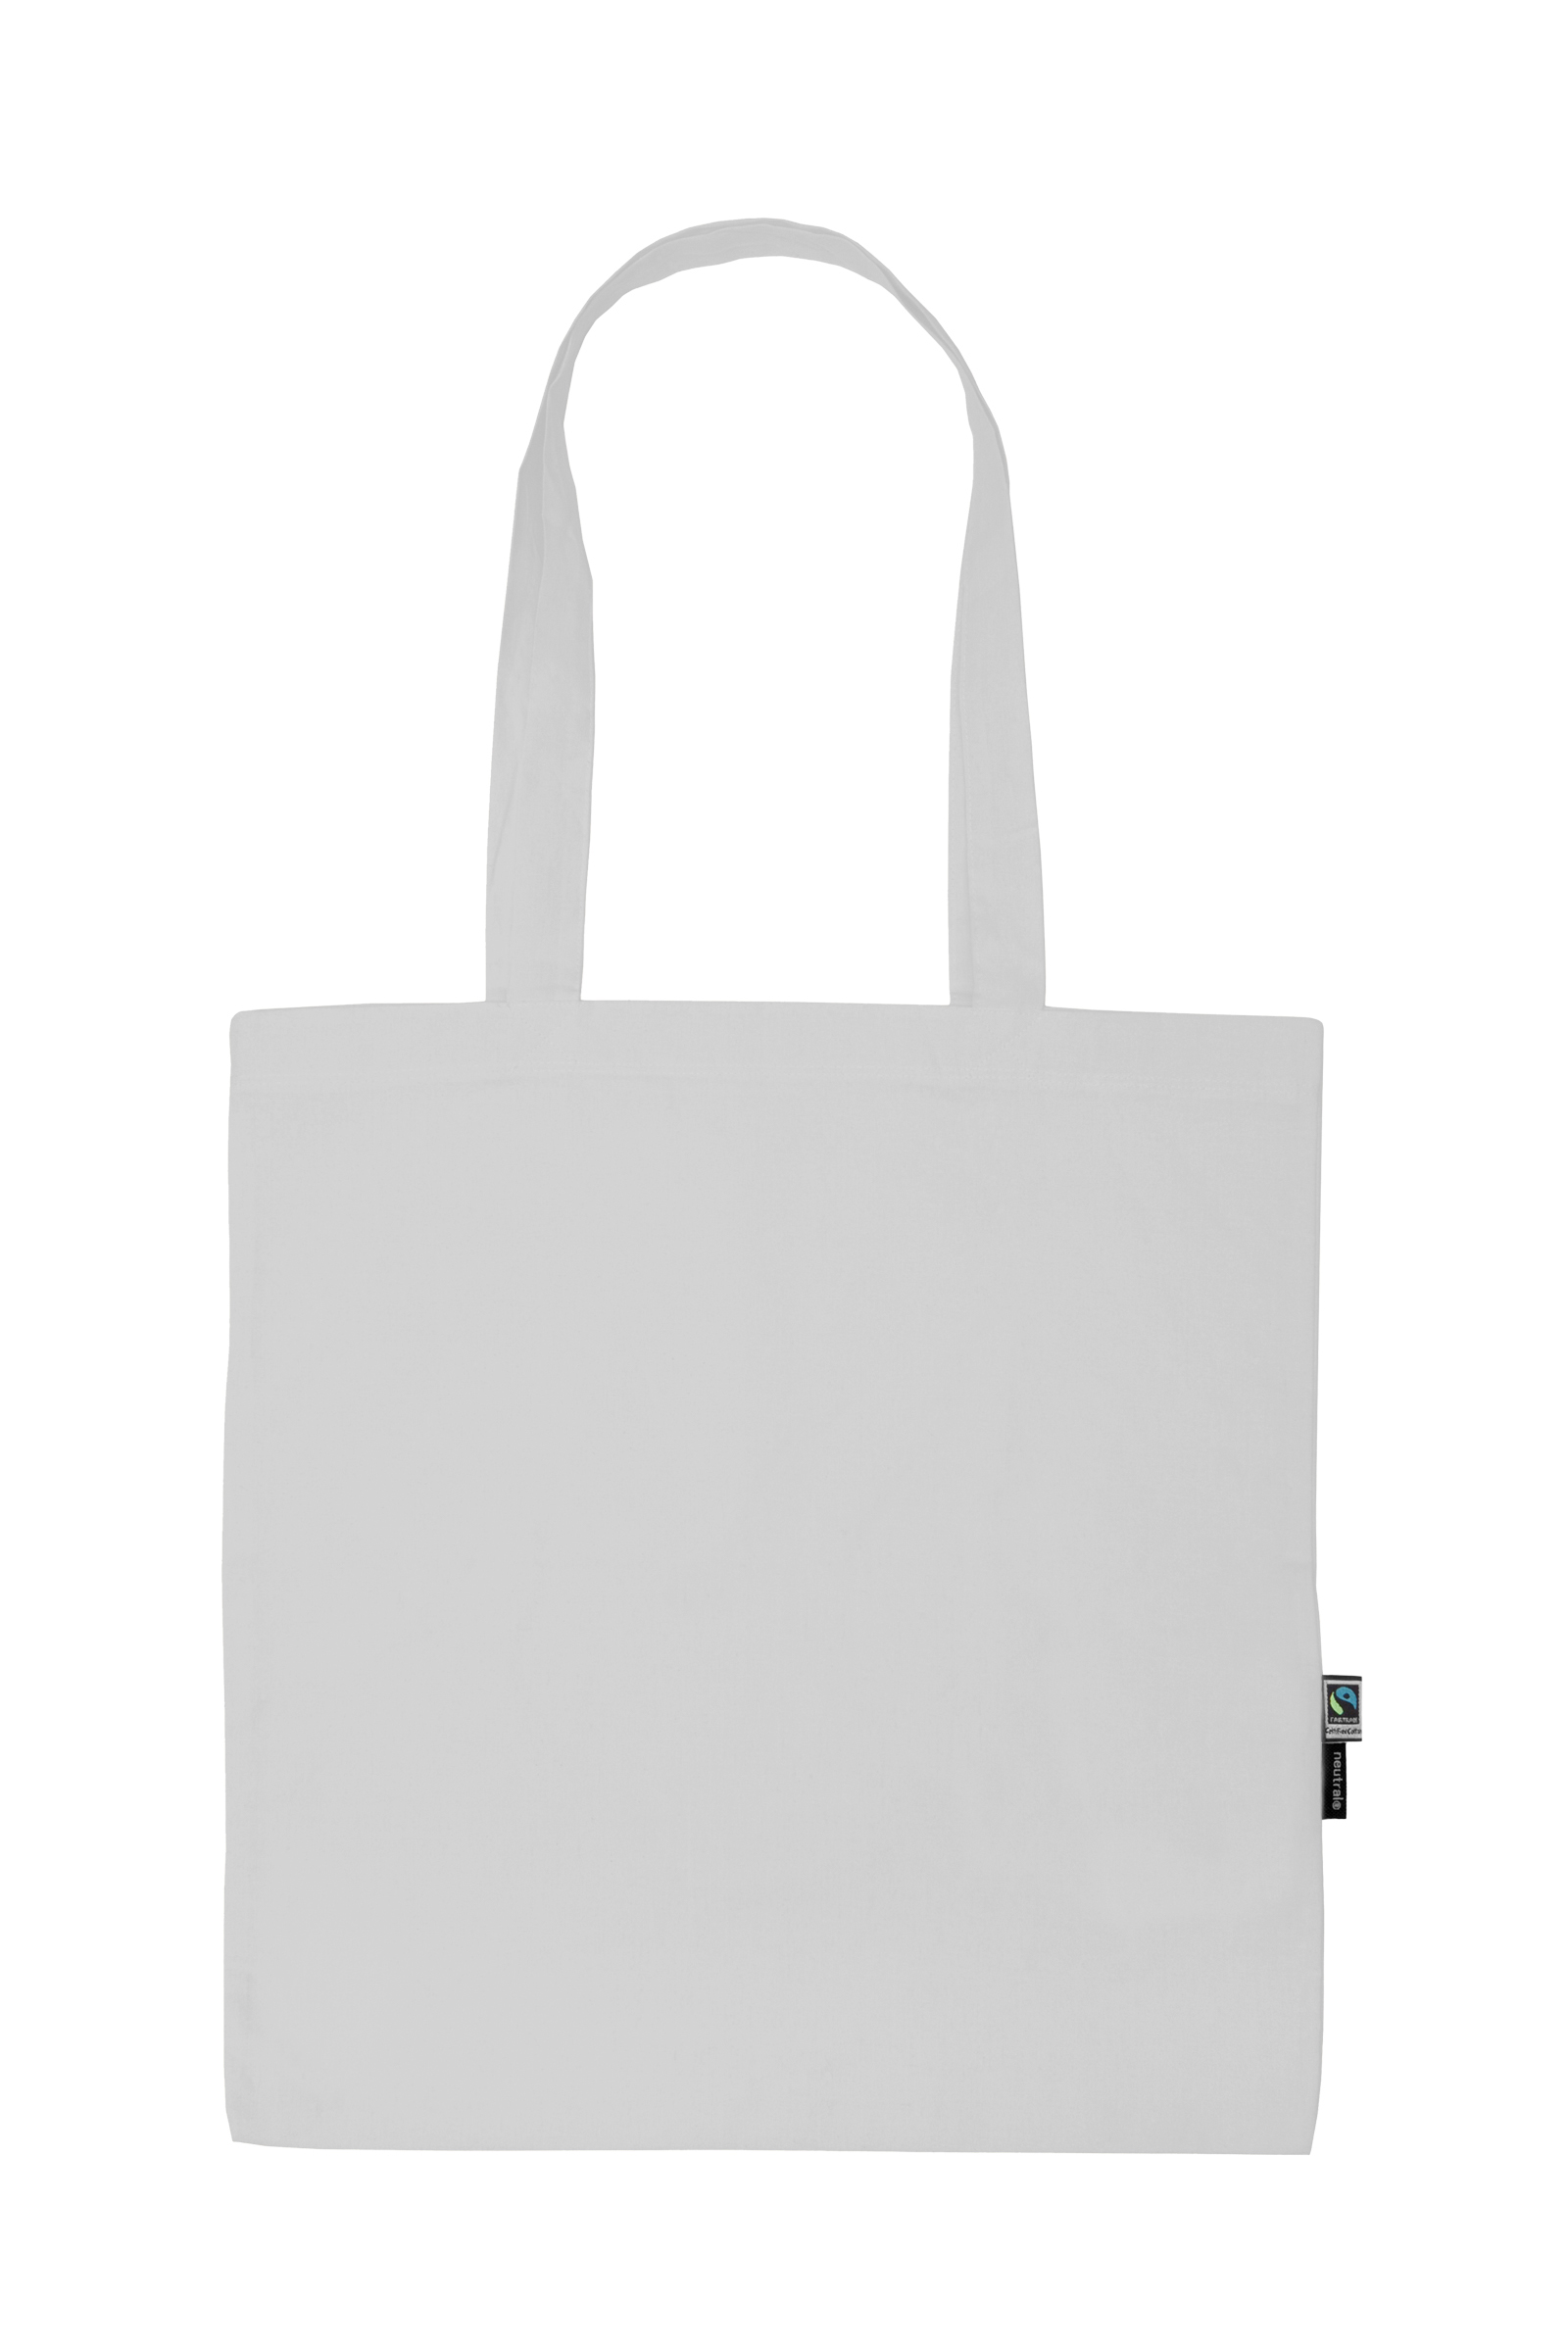 Neutral Shopping Bag w. Long Handles White